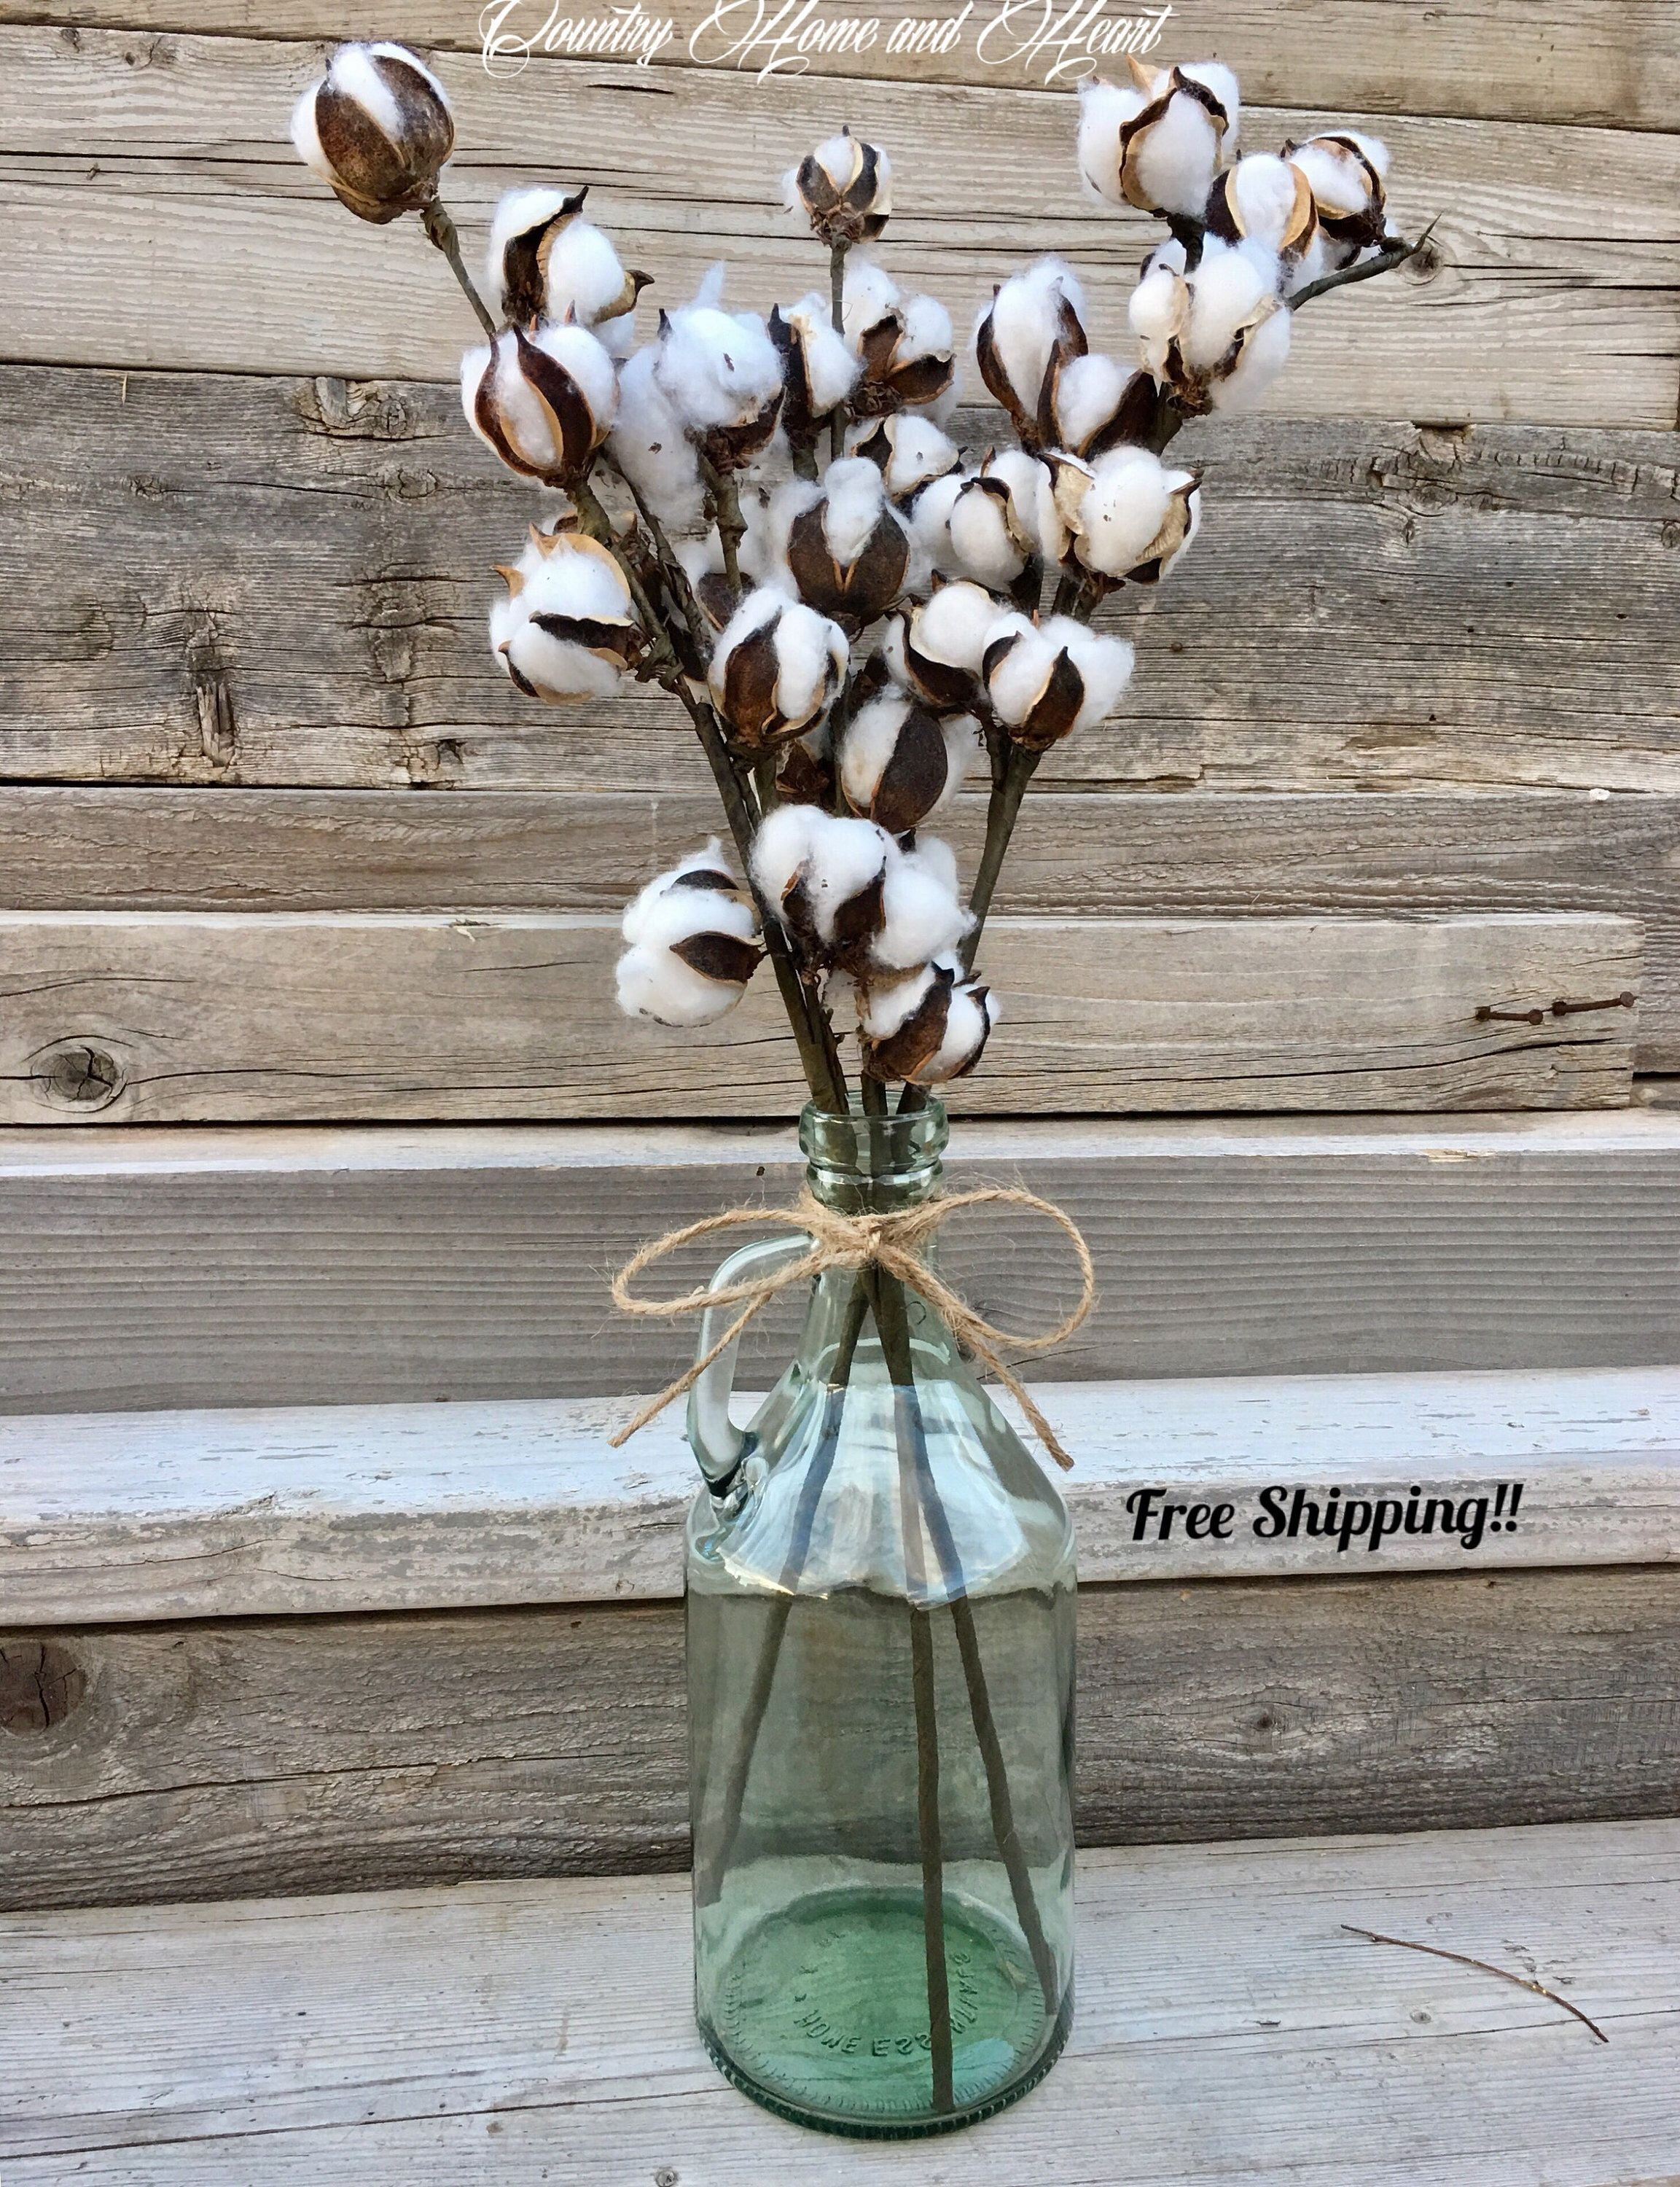 Large Jar With Cotton Stems Cotton Boll Decor Cotton Strens In A